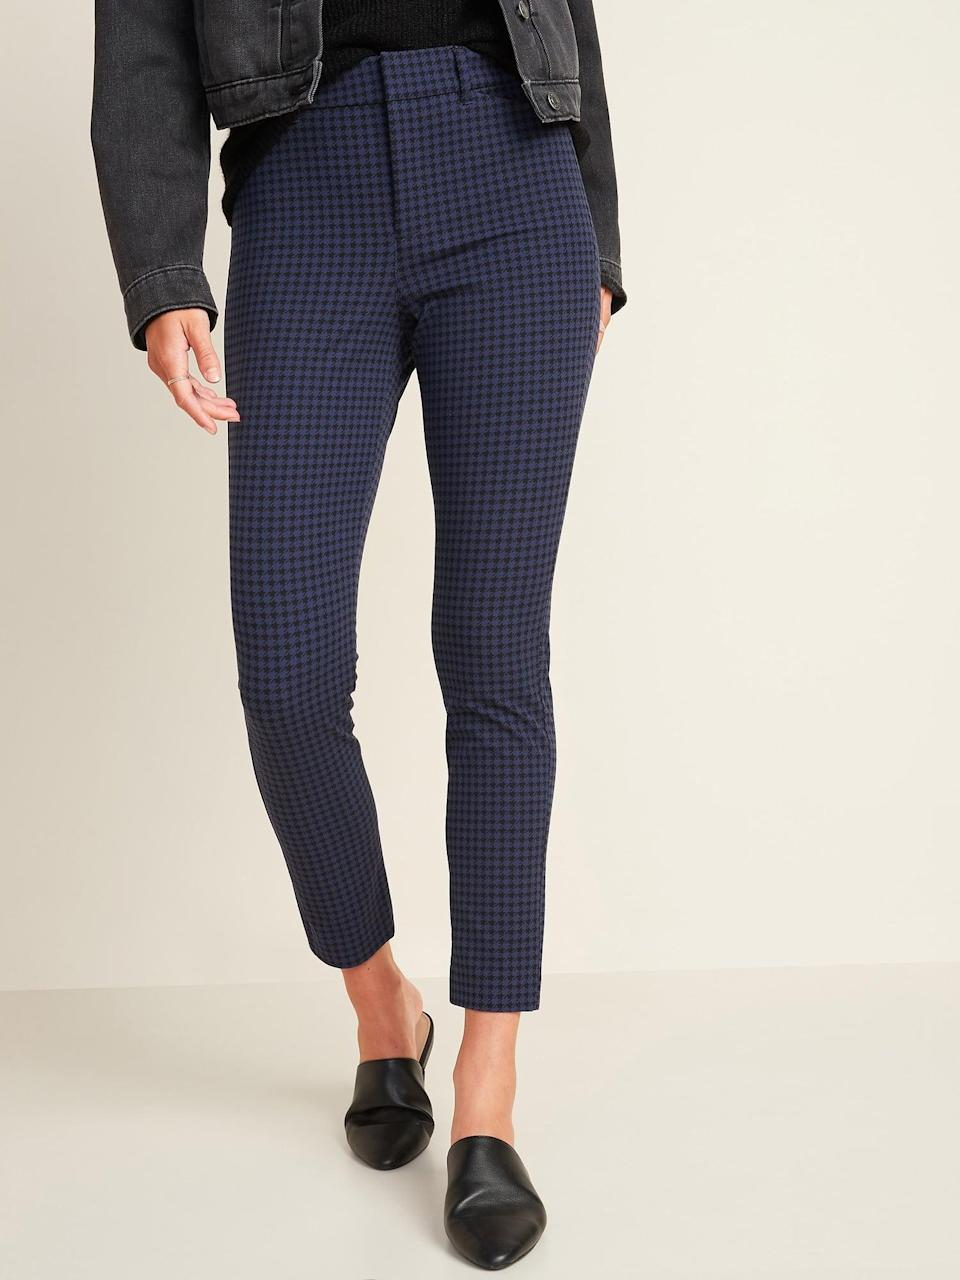 <p>Style these <span>Old Navy All-New High-Waisted Patterned Pixie Ankle Pants</span> ($40) with flats and a leather jacket.</p>